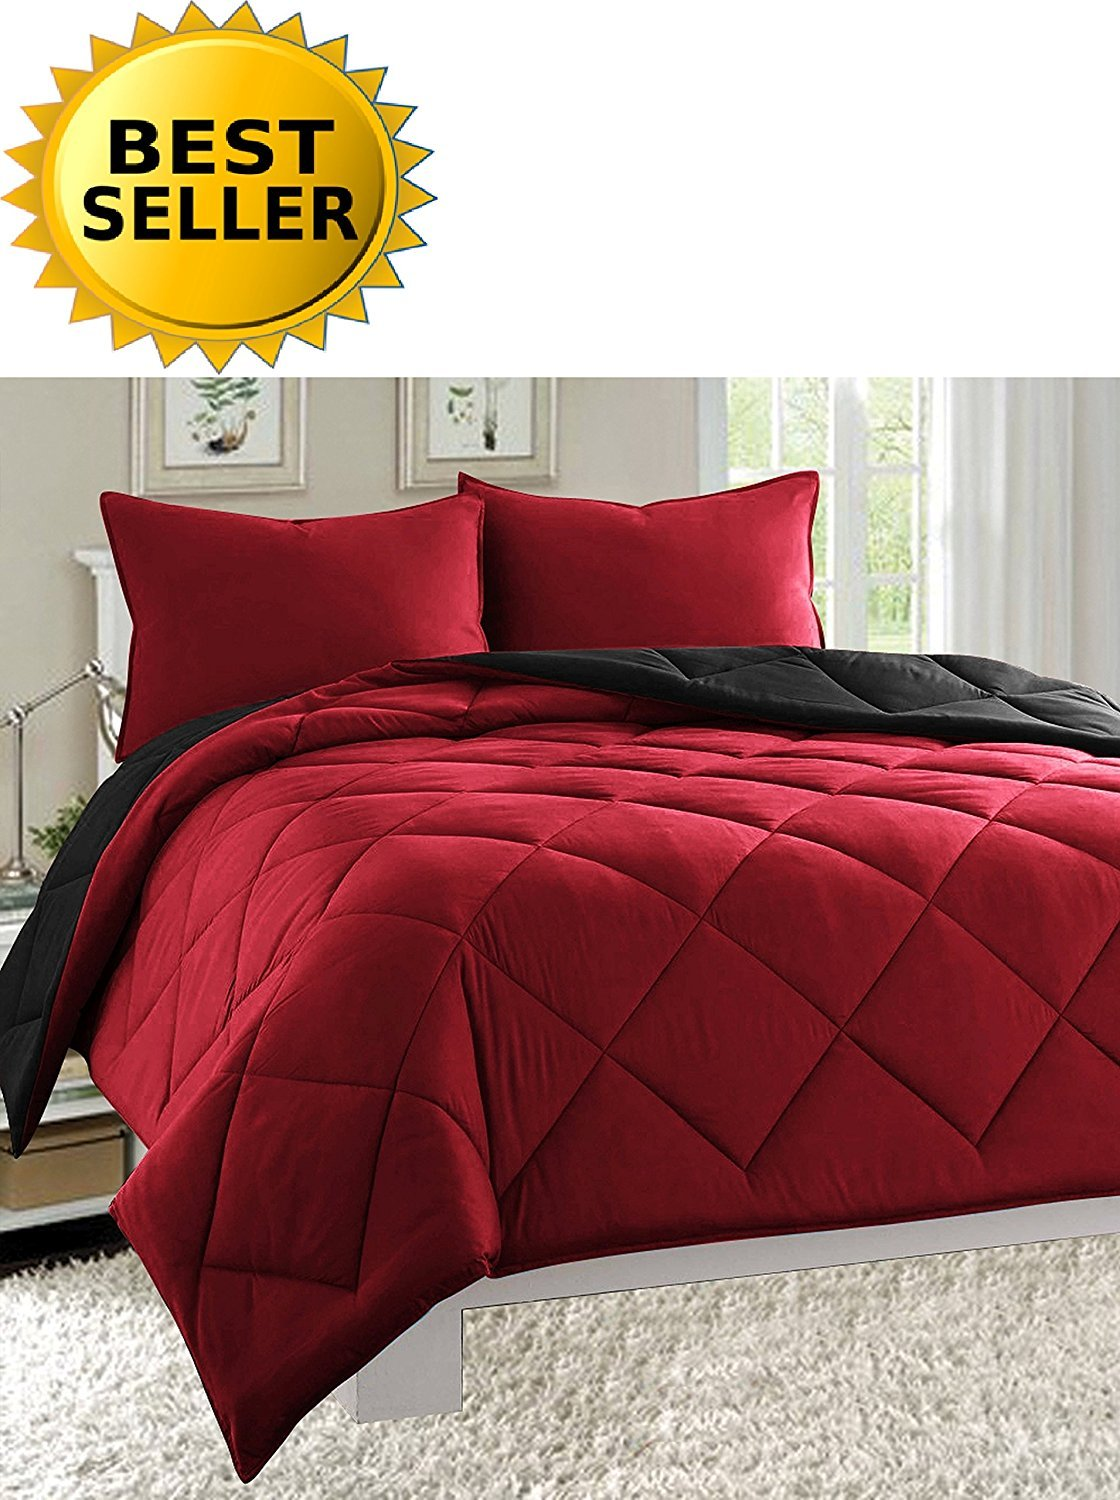 3-Piece Comforter Set - HypoAllergenic, Diamond Stitched, Full/Queen, Black/Burgundy